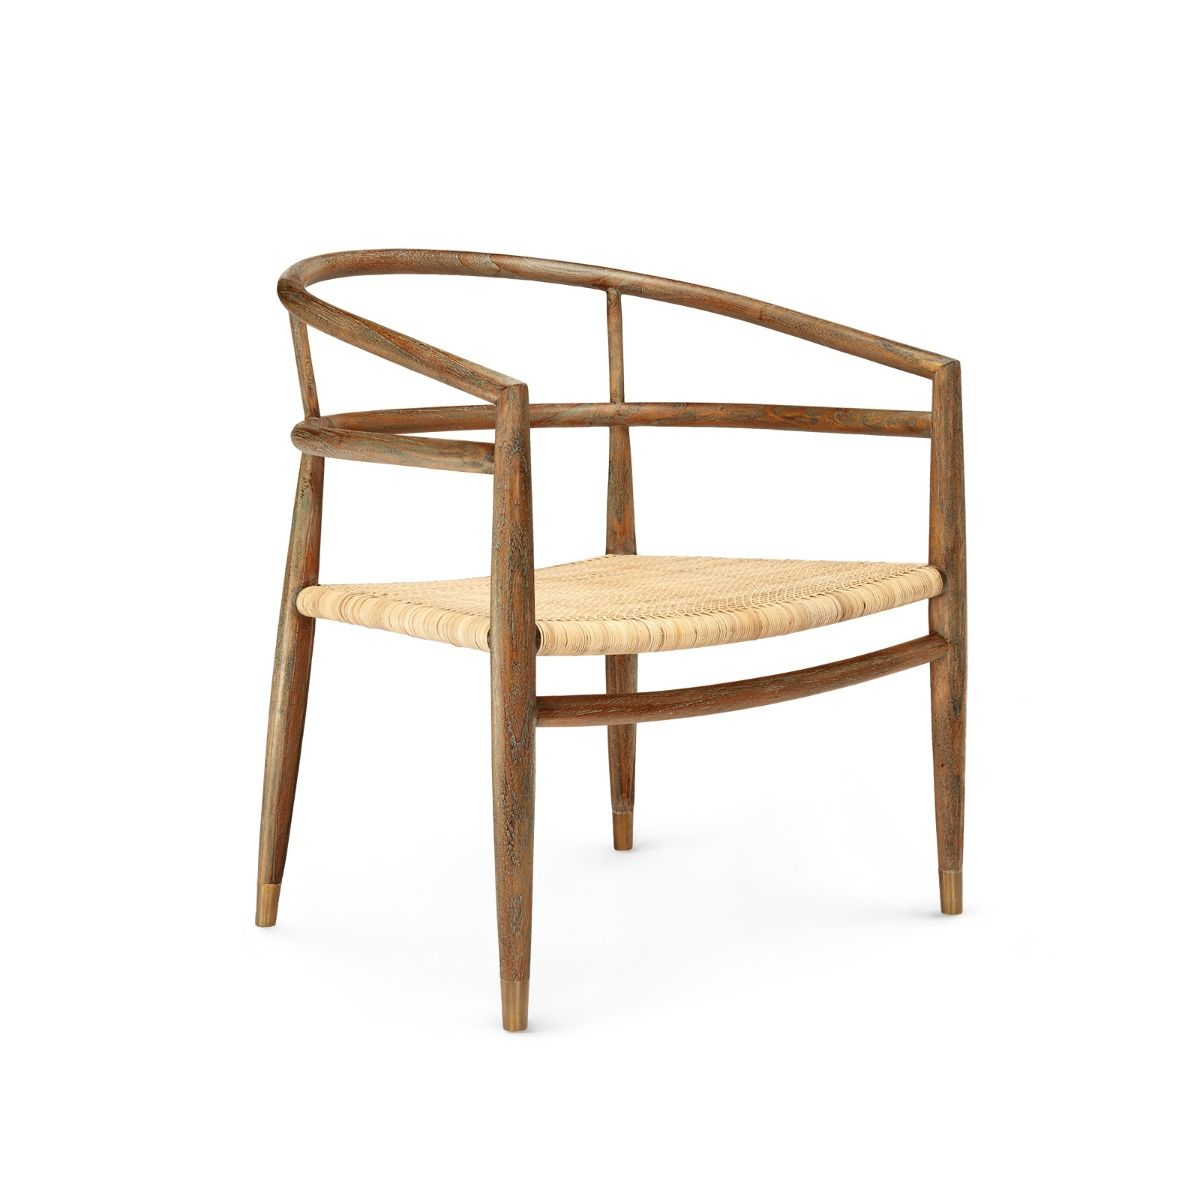 Bungalow 5 - ANDERSSEN LOUNGE CHAIR, DRIFTWOOD